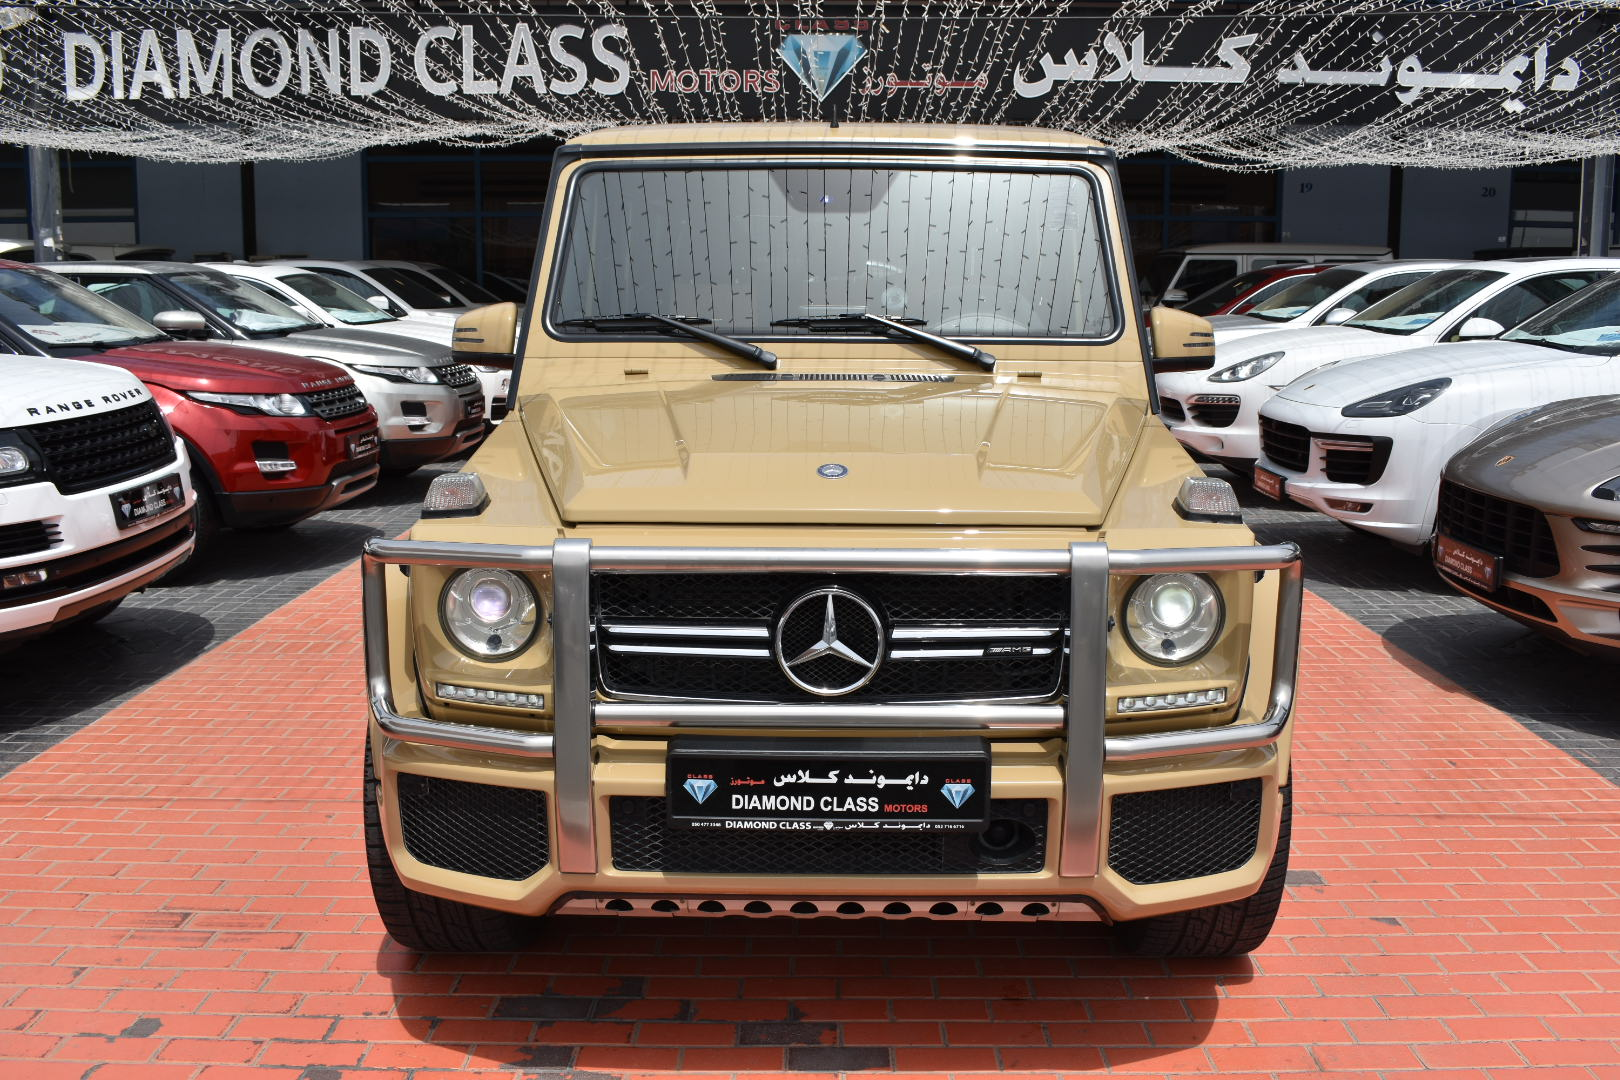 Diamond Class Motors Diamond Class Used Cars Dealers